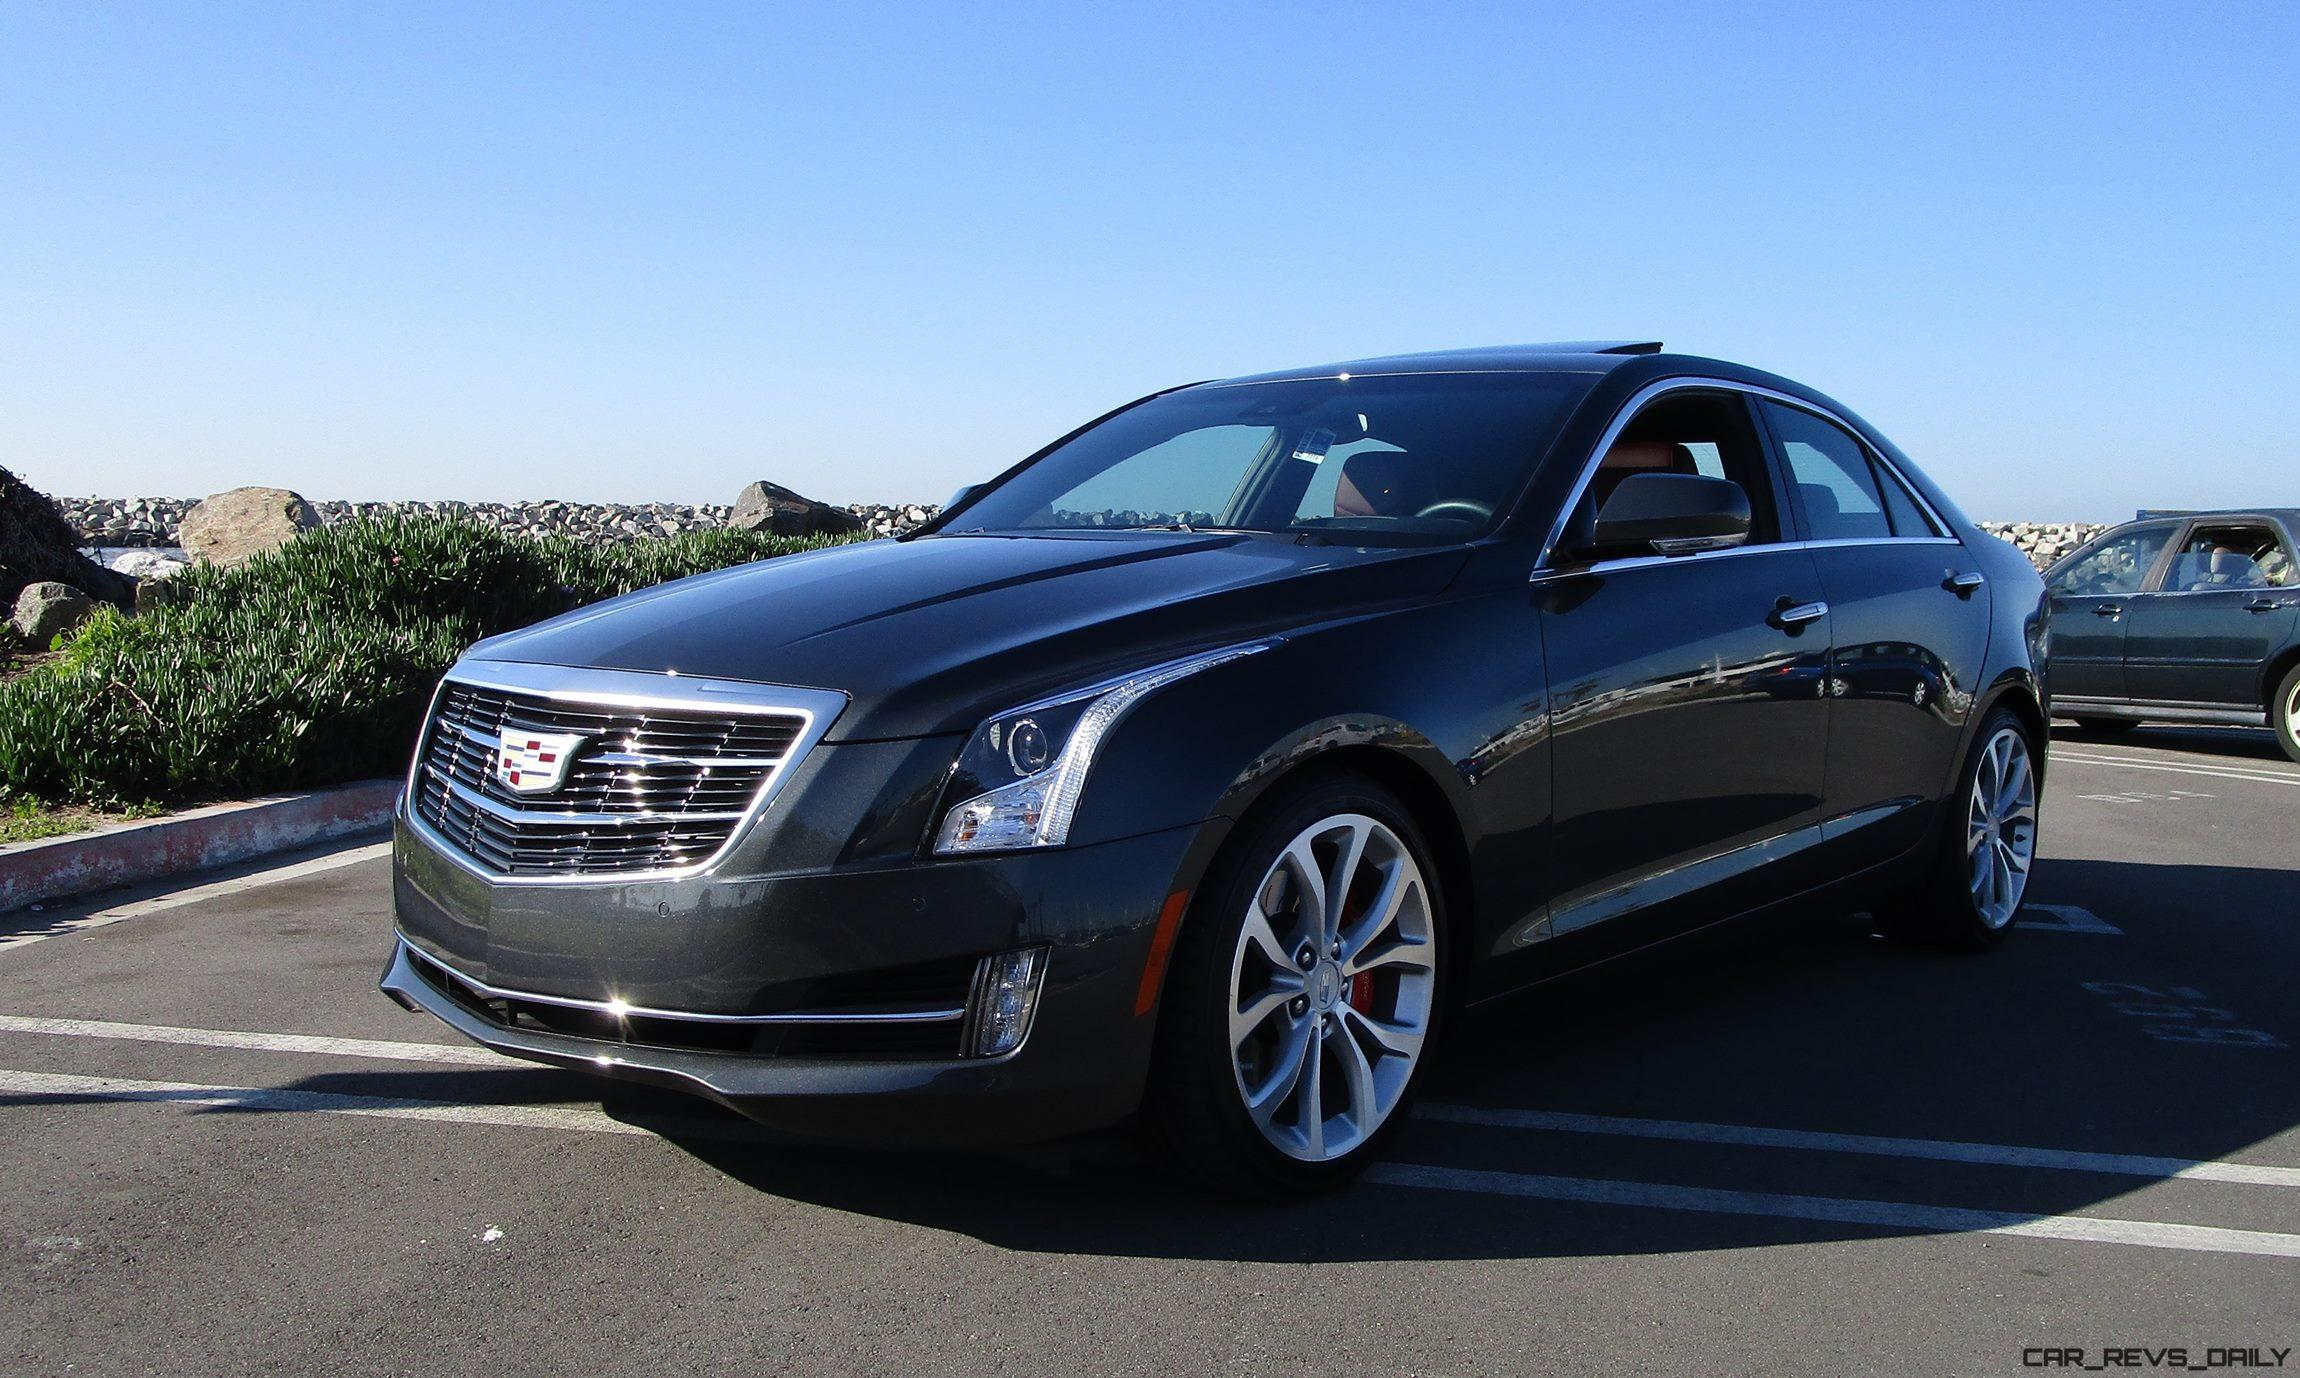 2017 Cadillac Ats 3 6 Performance 28 Next Previous